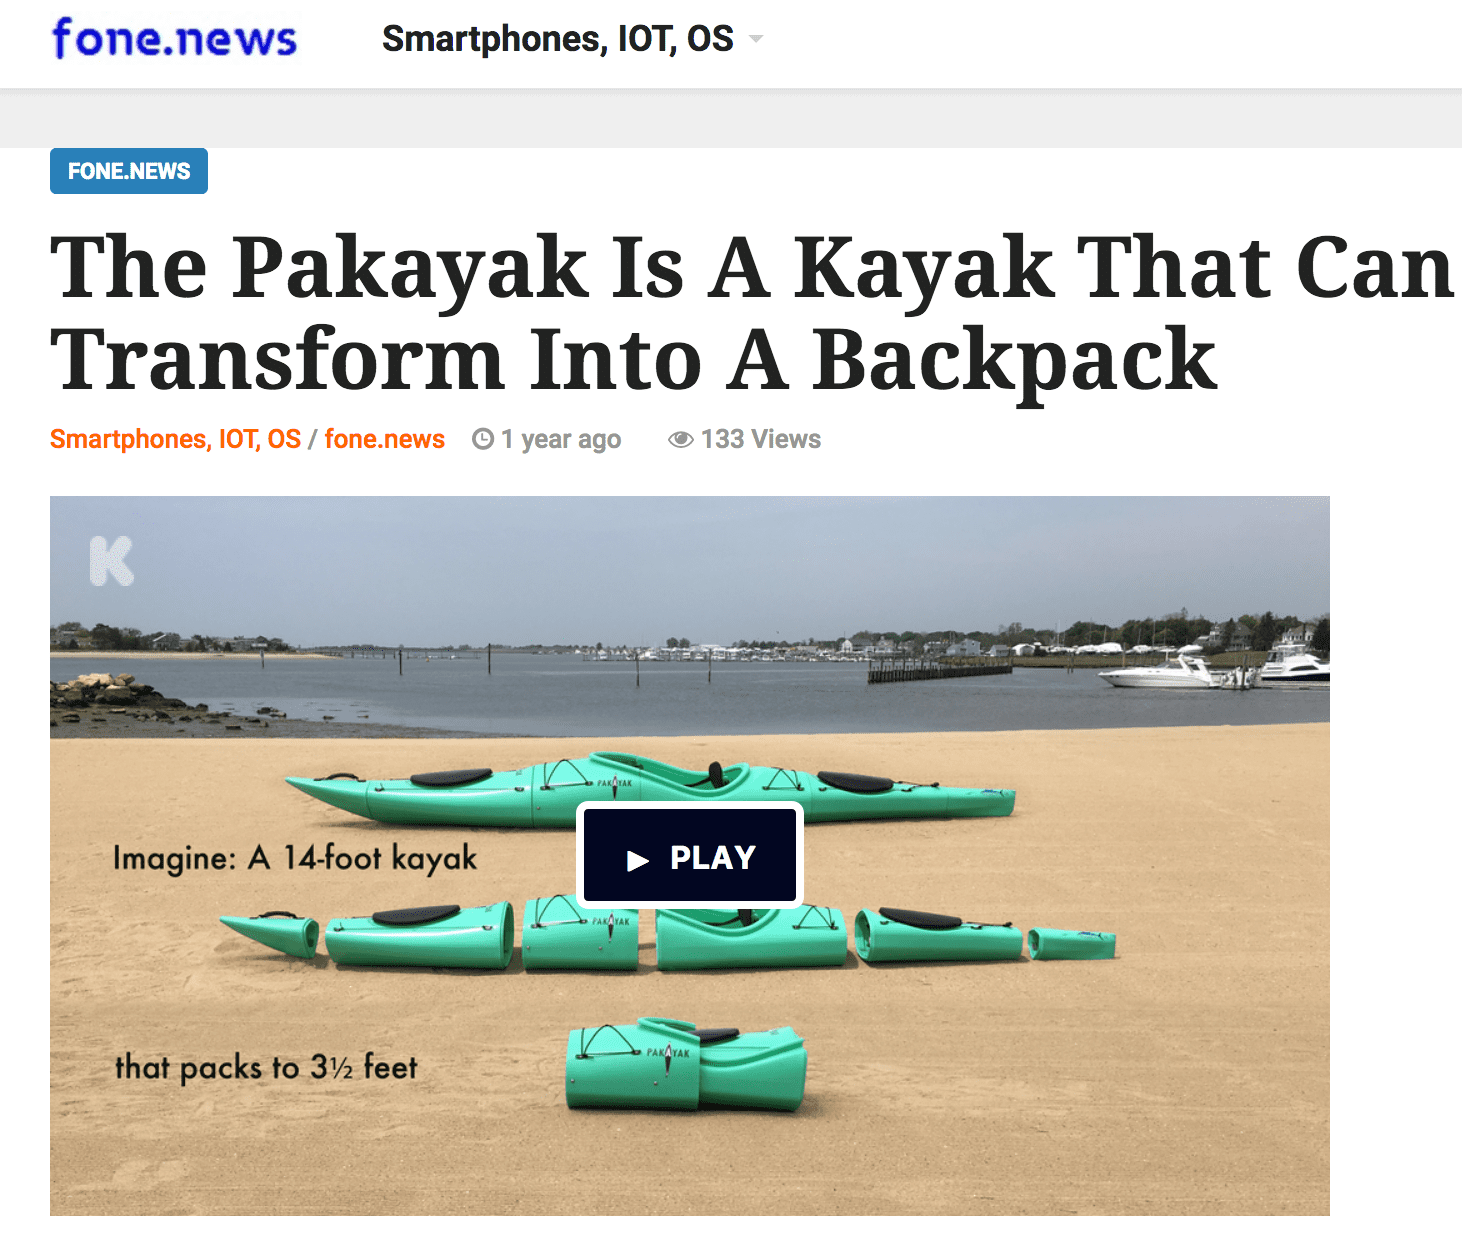 fone.news: The Pakayak is a Kayak That Can Transform Into a Backpack